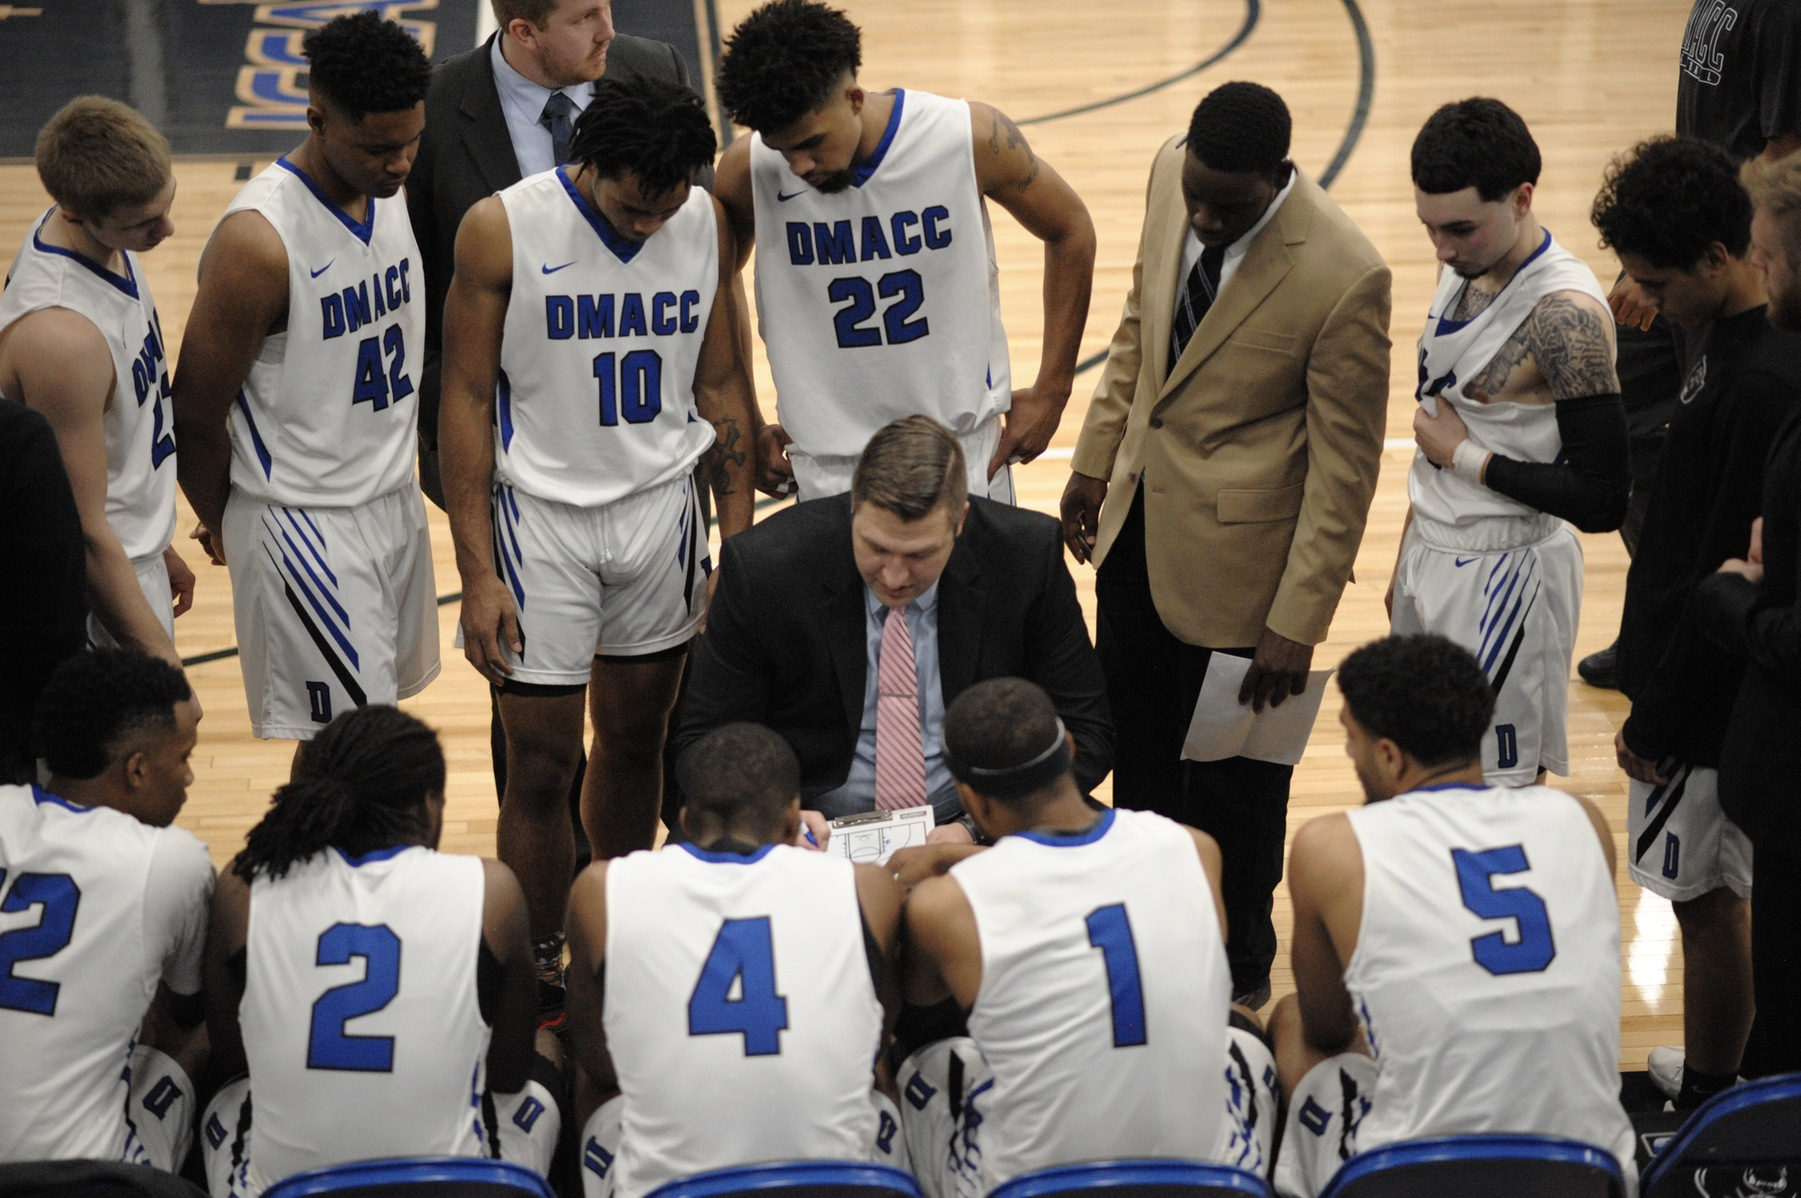 DMACC men's basketball team falls to ILCC in triple overtime